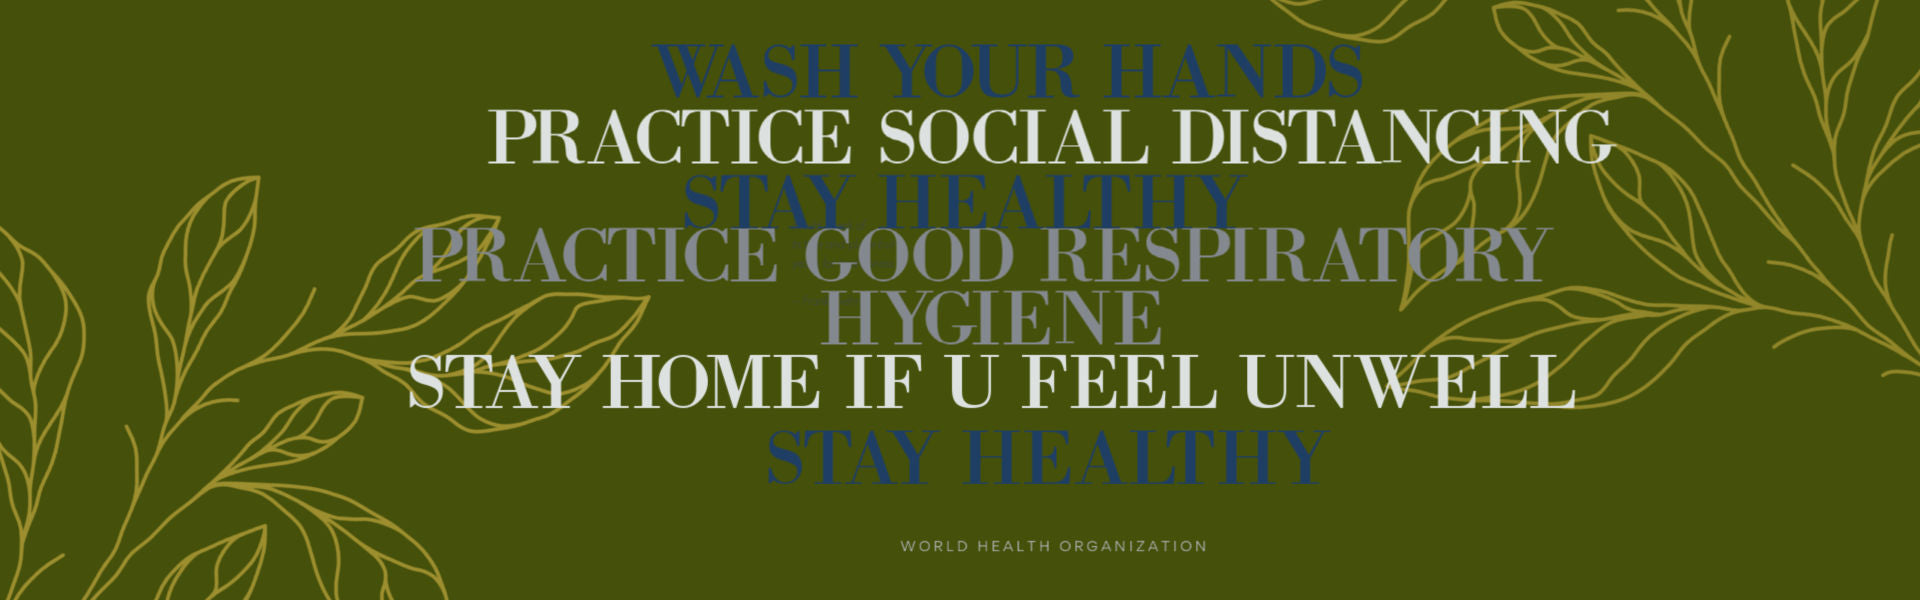 Covid-19 Response Image Wash Hands Stay Healthy and Safe